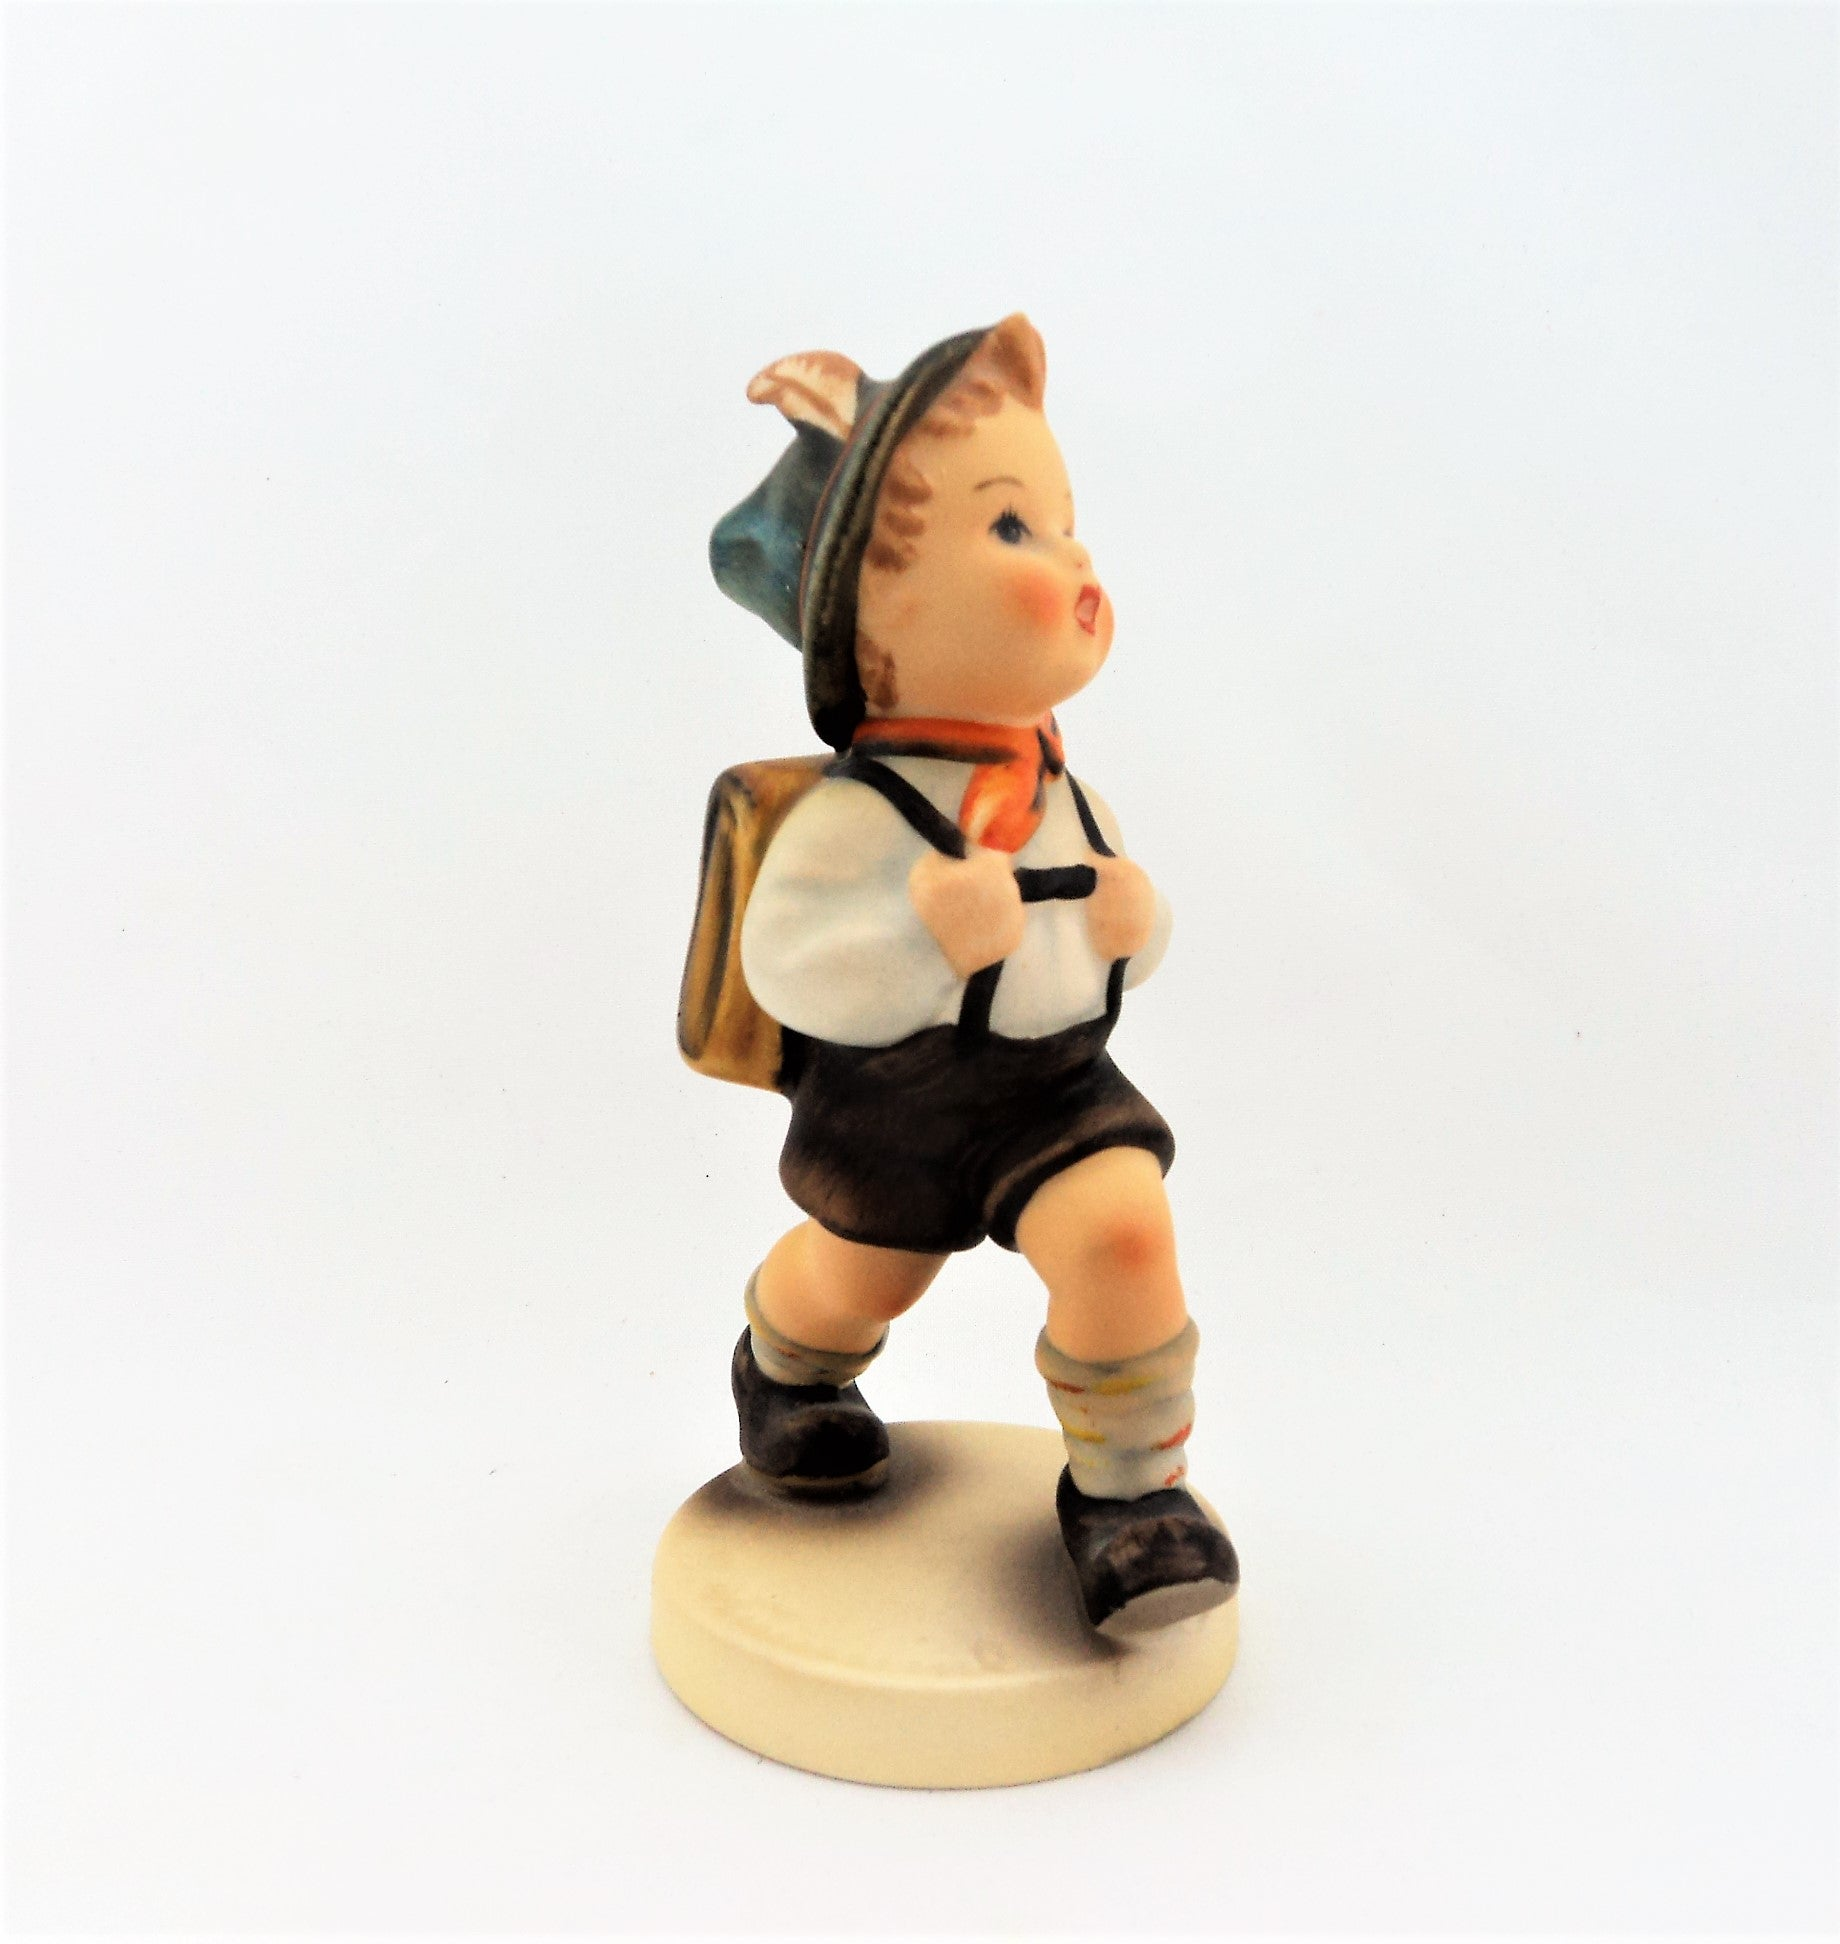 Vintage Small Hummel School Boy Figurine